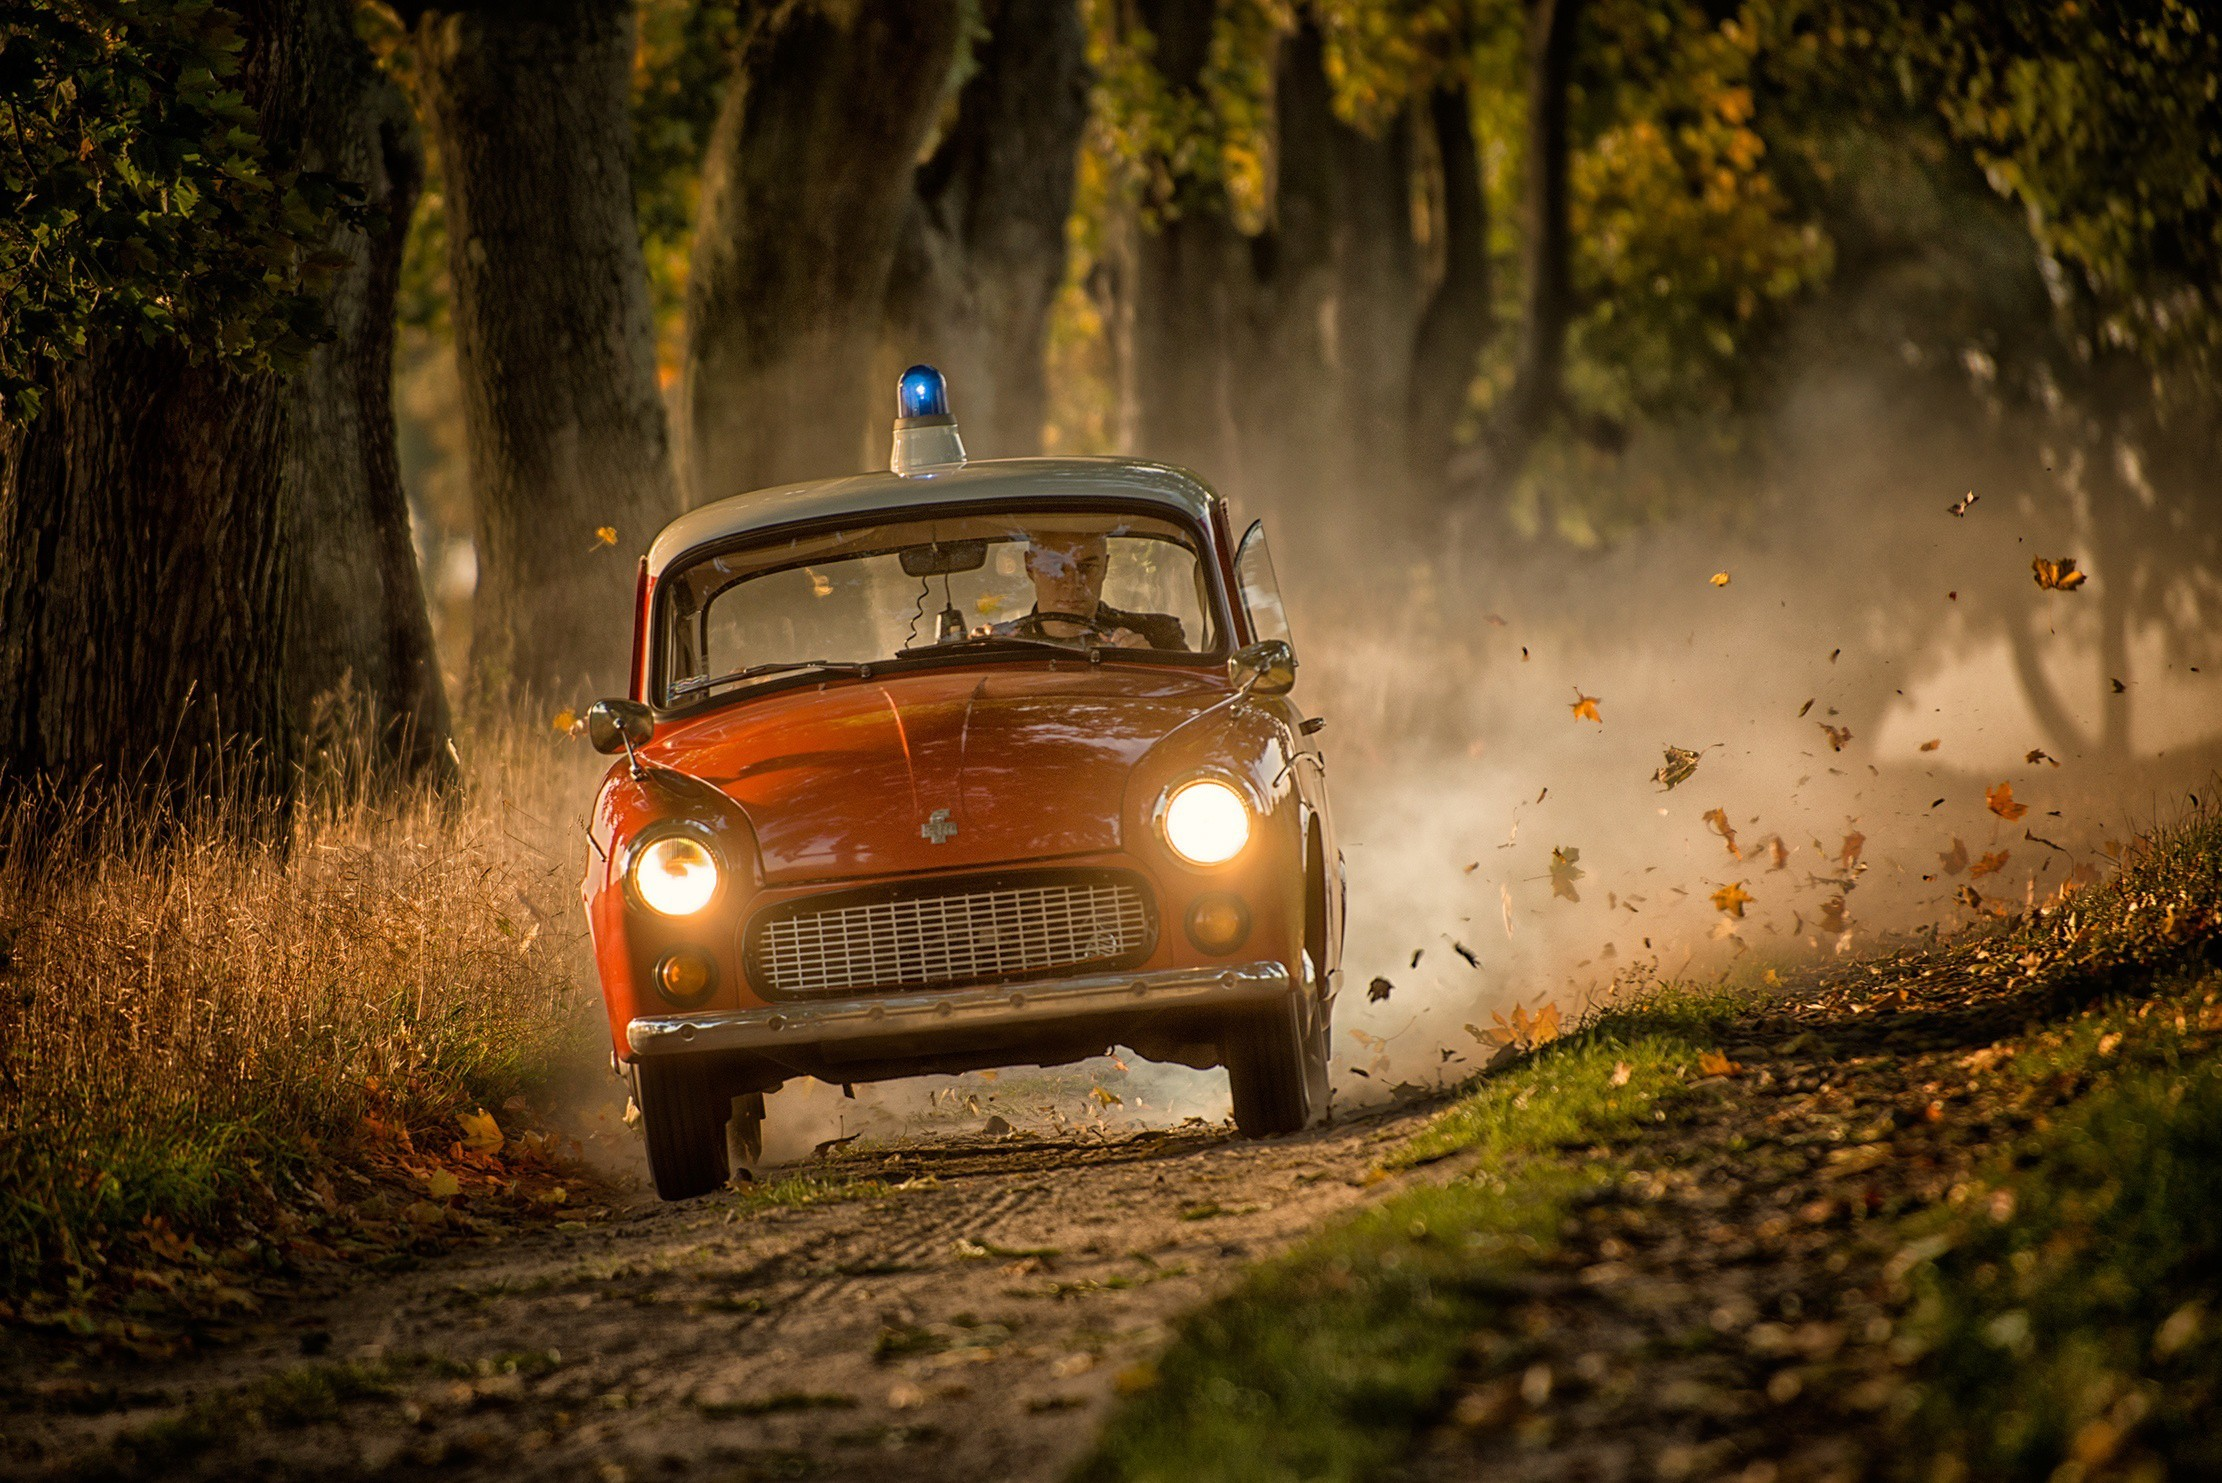 Gypsy Car Full Hd Wallpaper Police Car Wallpaper Backgrounds 66 Images